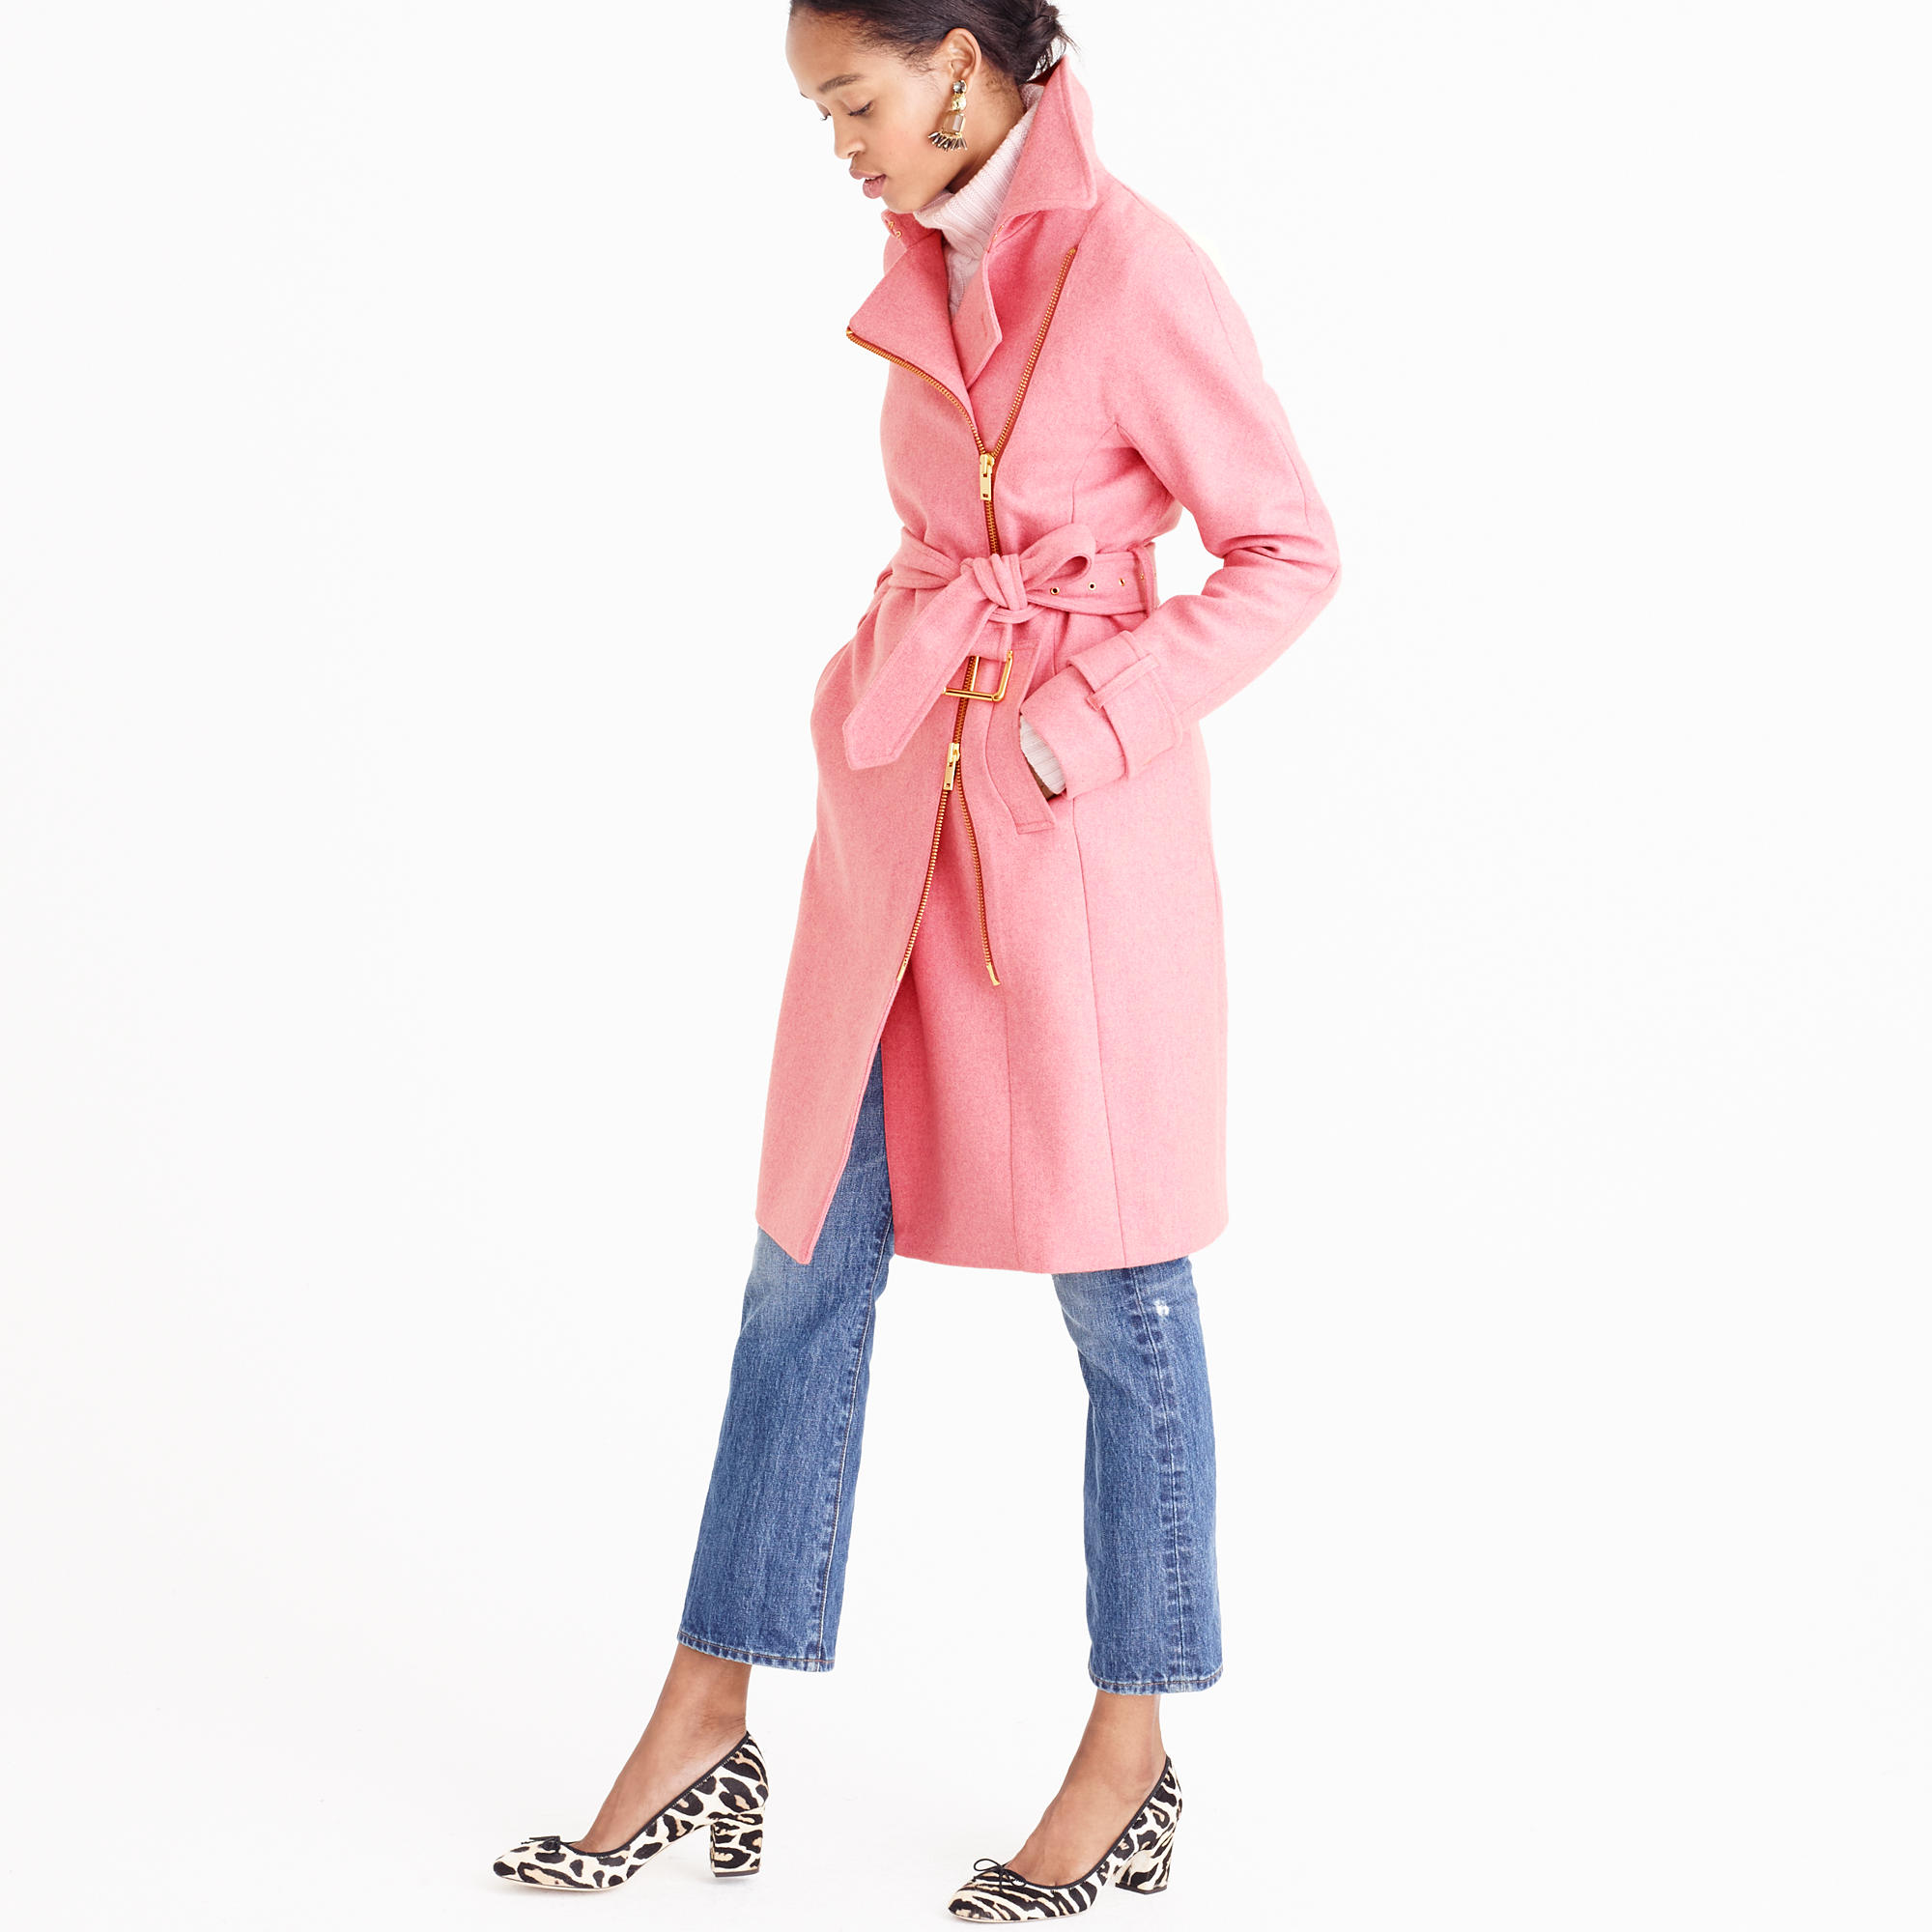 J.Crew pink belted trench coat in wool | see more on www.shoppingmycloset.com